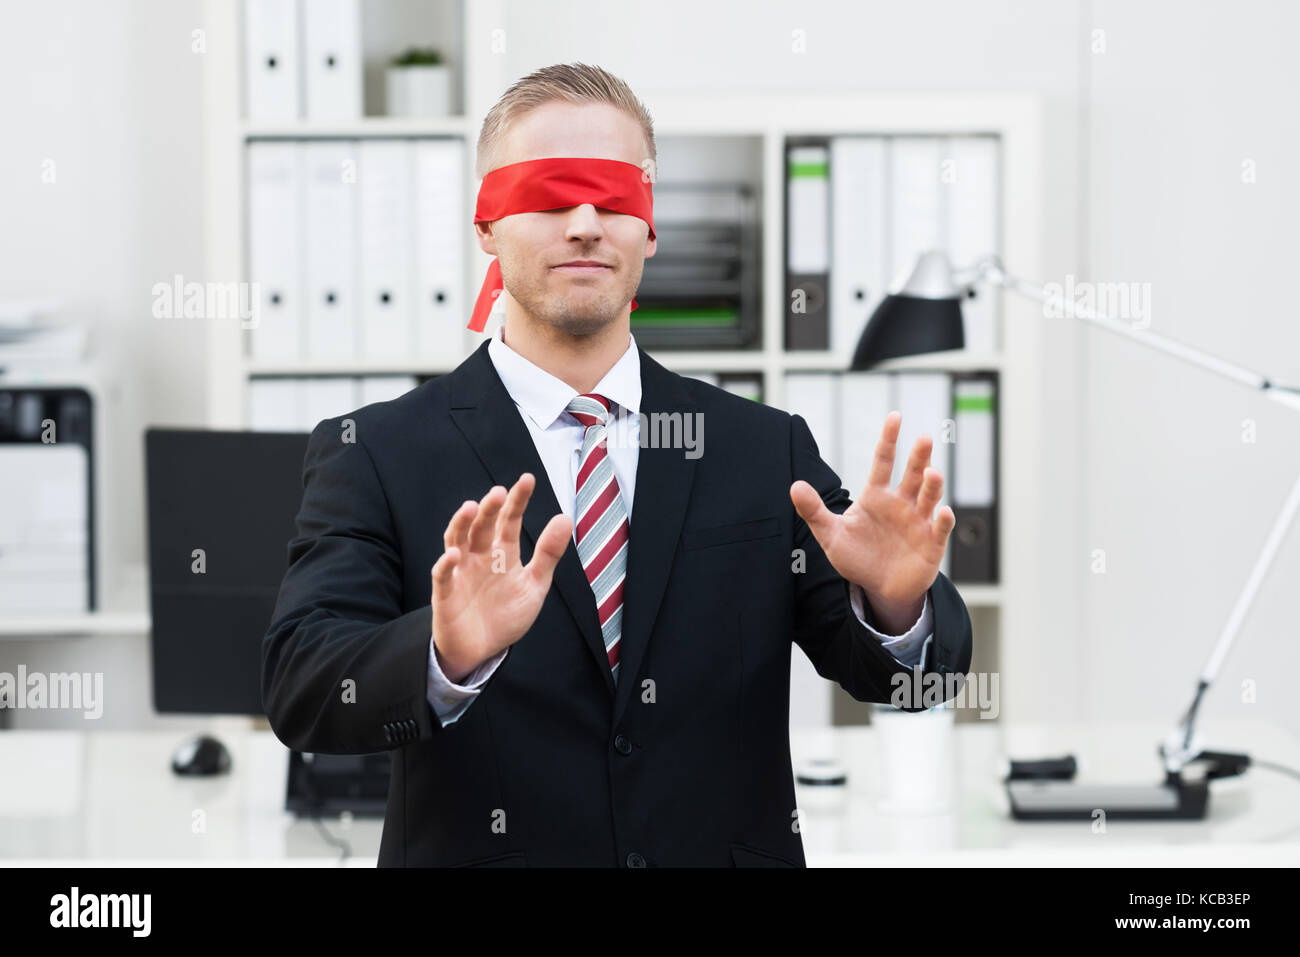 2958ac8b58c Portrait Of A Blindfolded Young Businessman Gesturing In Office - Stock  Image